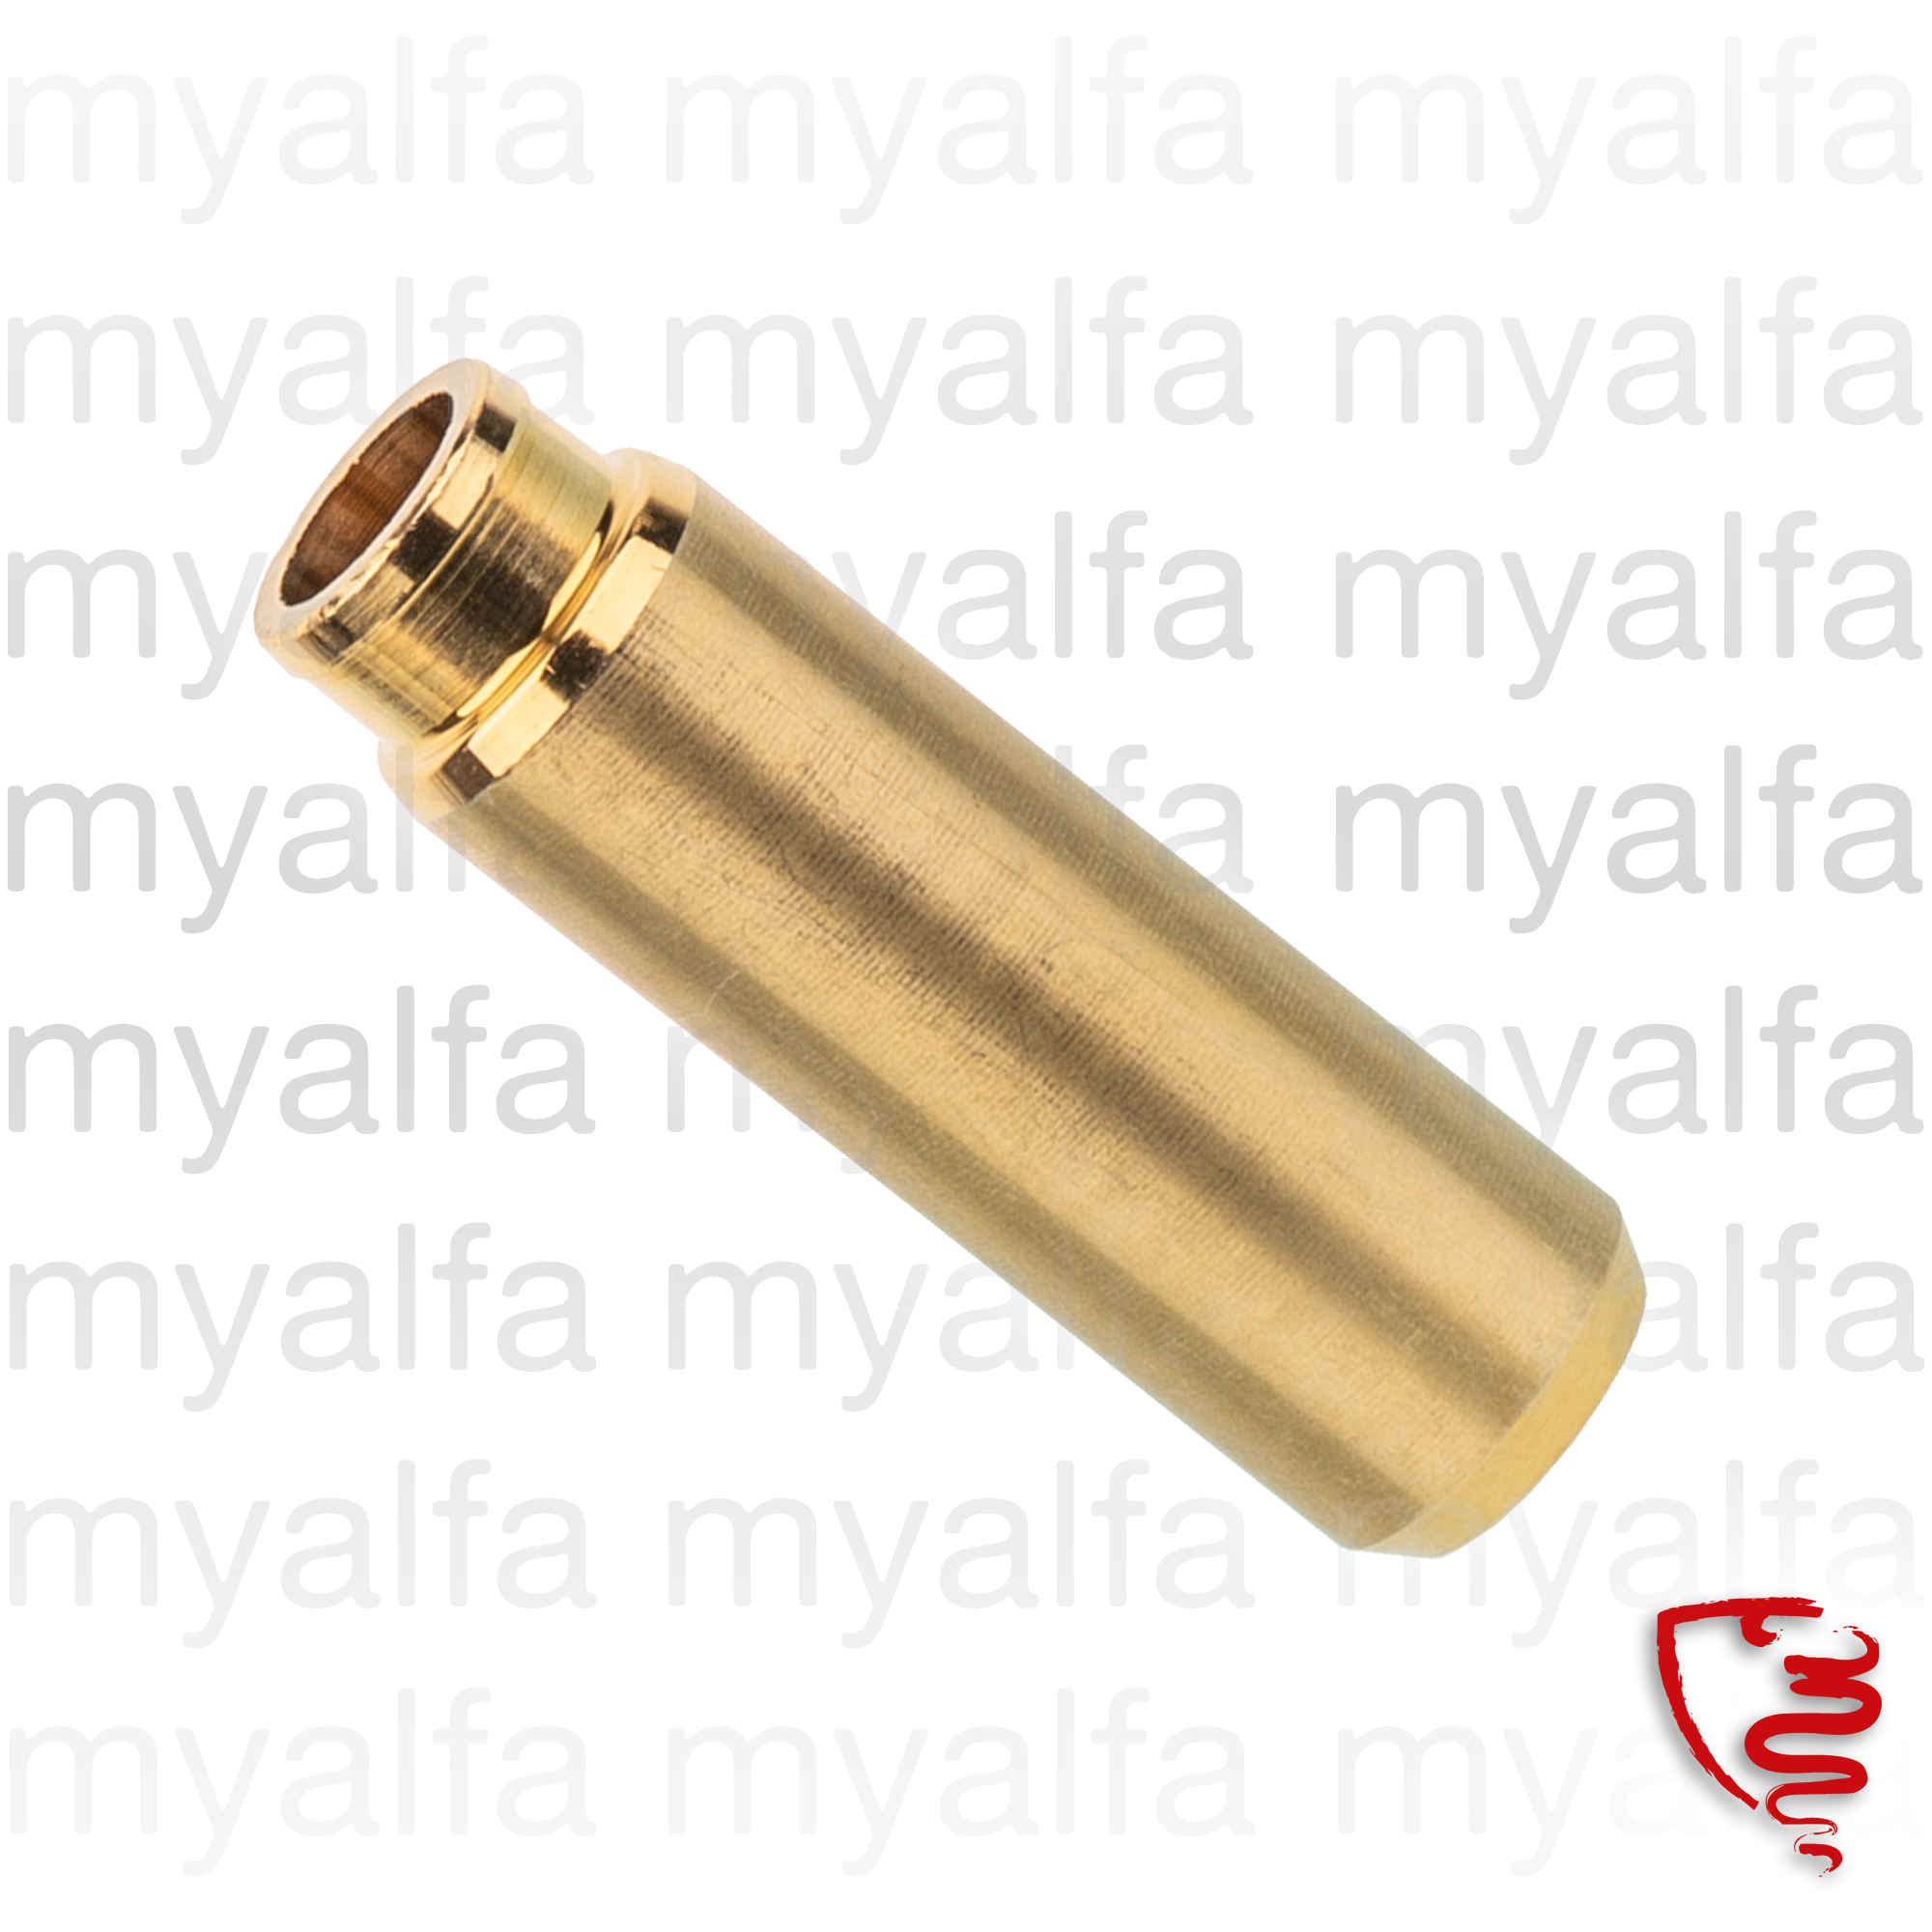 8MM valve guide - 750 for 750/101, Engine, Cylinder head, Head